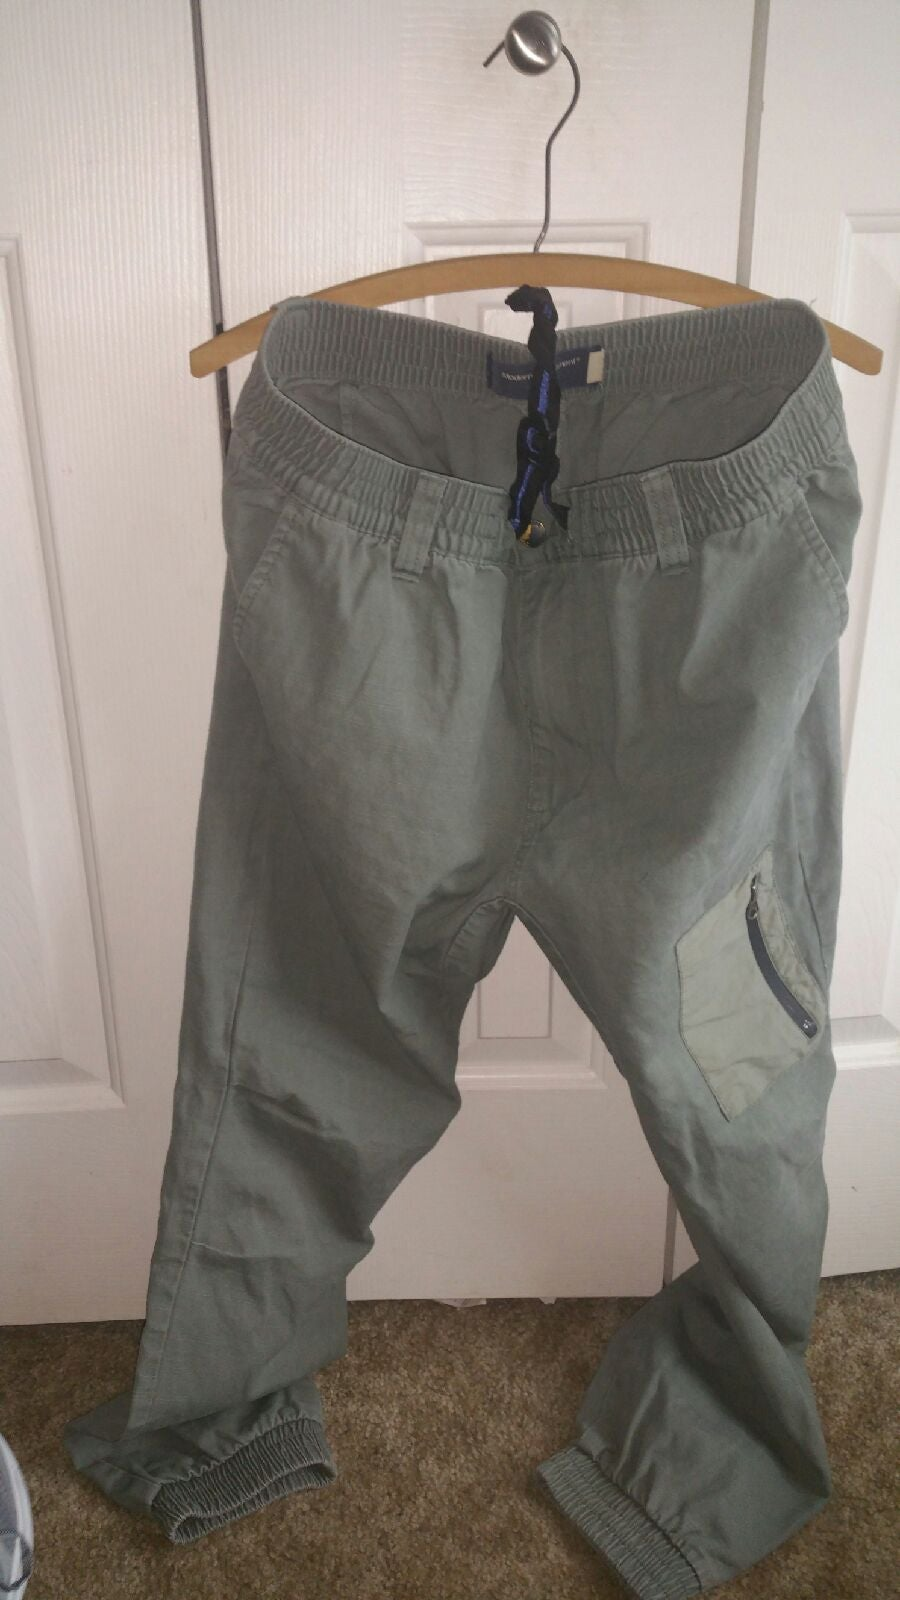 Modern Amusement Slightly Used Pants/jog